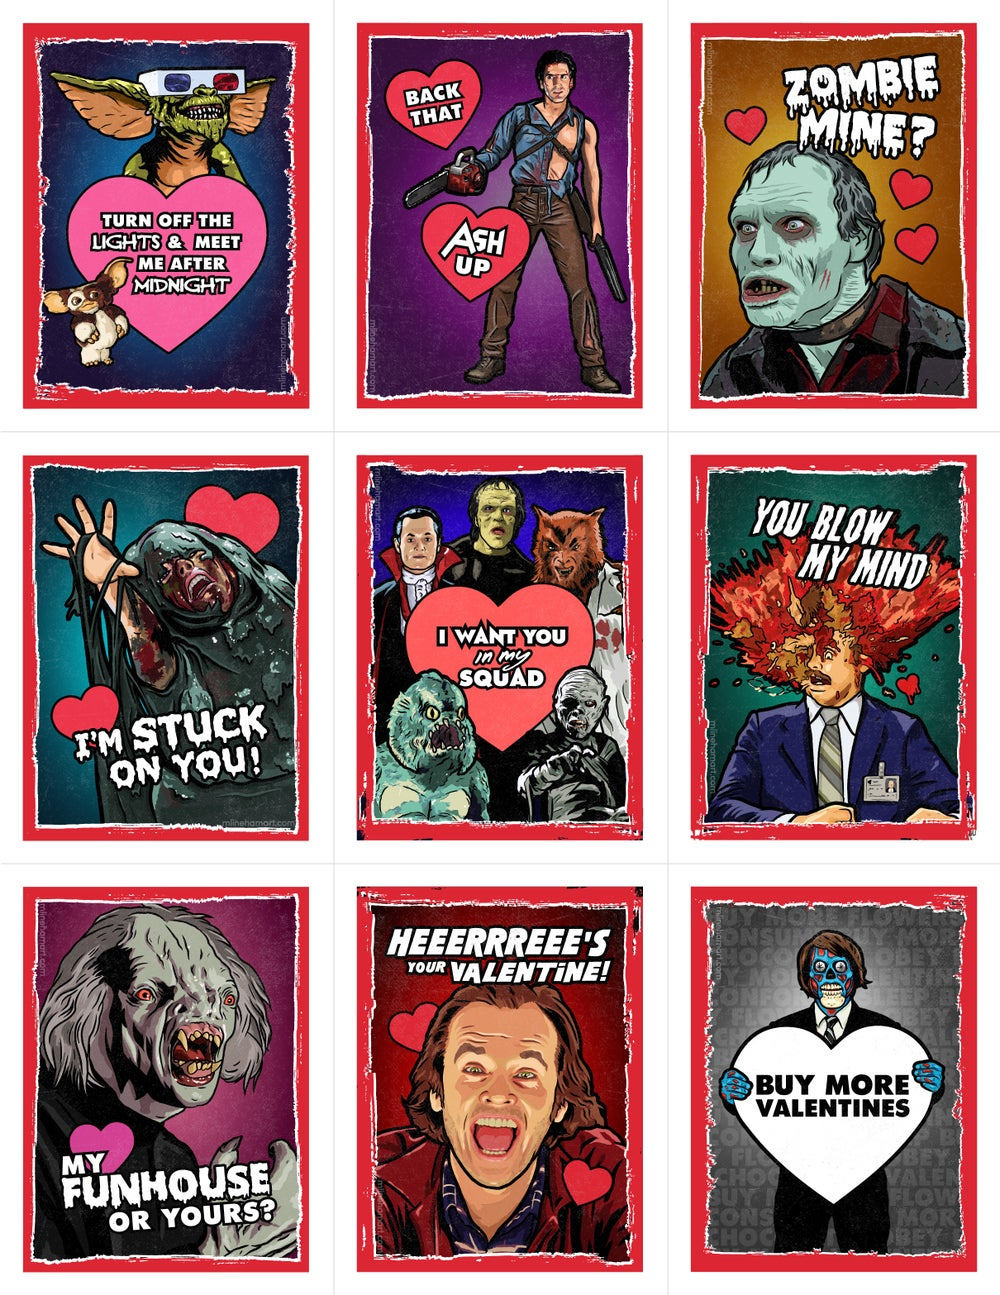 80's Horror Valentine's Day Card Pack (2018)